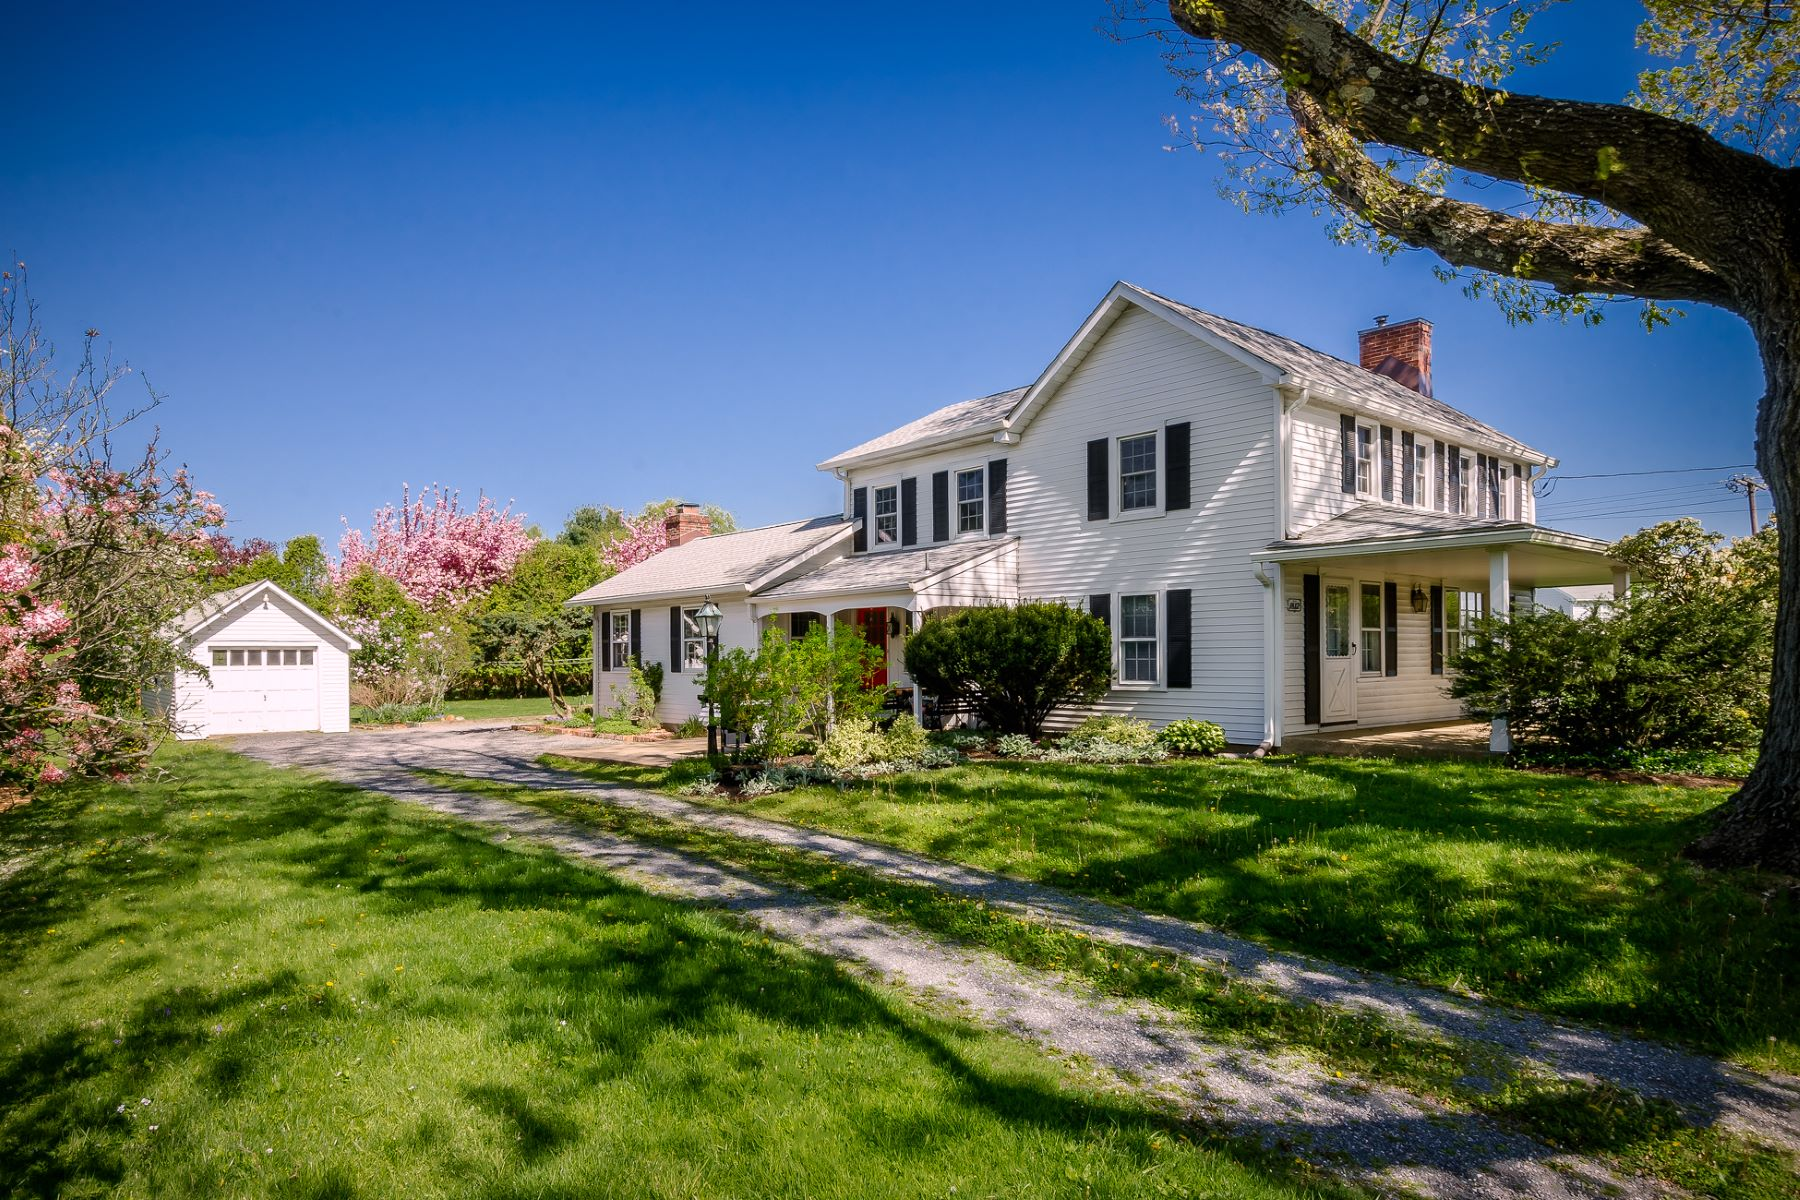 Single Family Homes for Sale at In East Windsor, Where Homey Meets History 790 Old York Road East Windsor, New Jersey 08520 United States